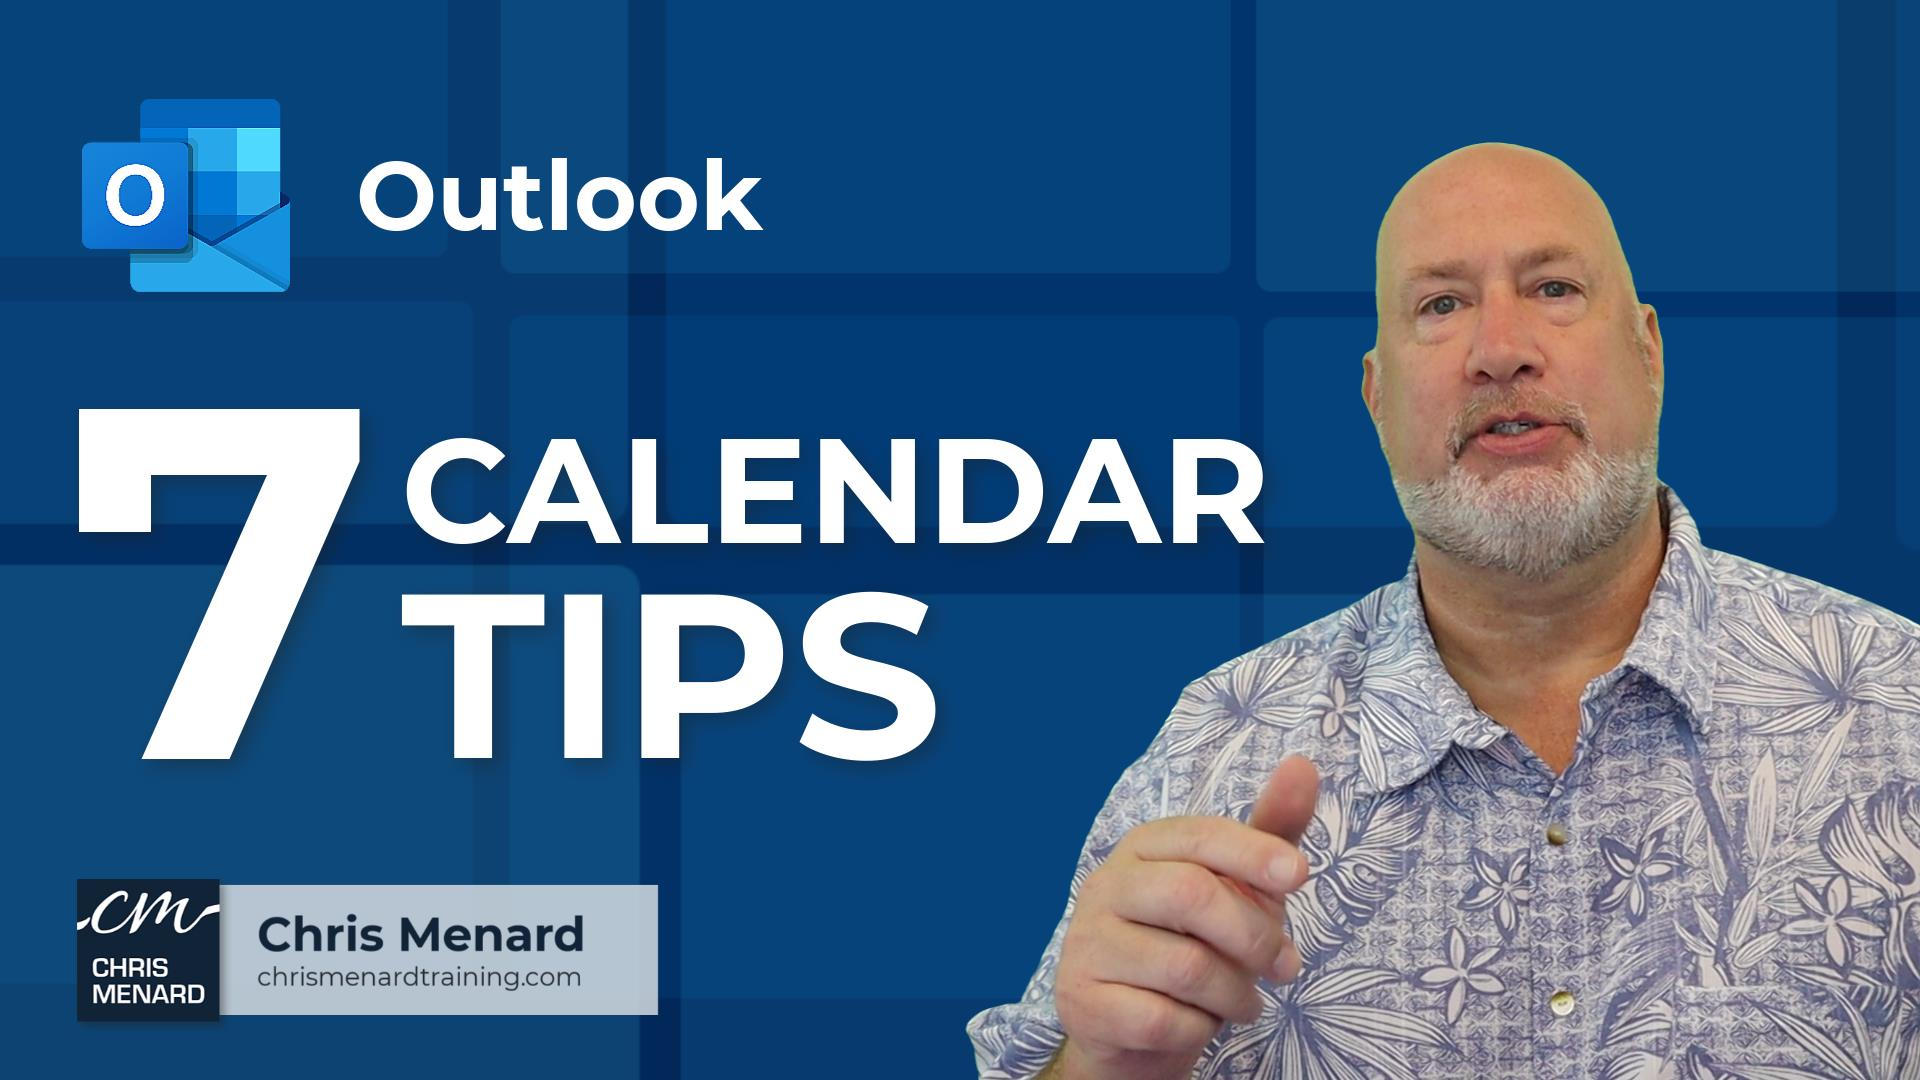 Outlook - 7 Calendar Tips Every User Should Know